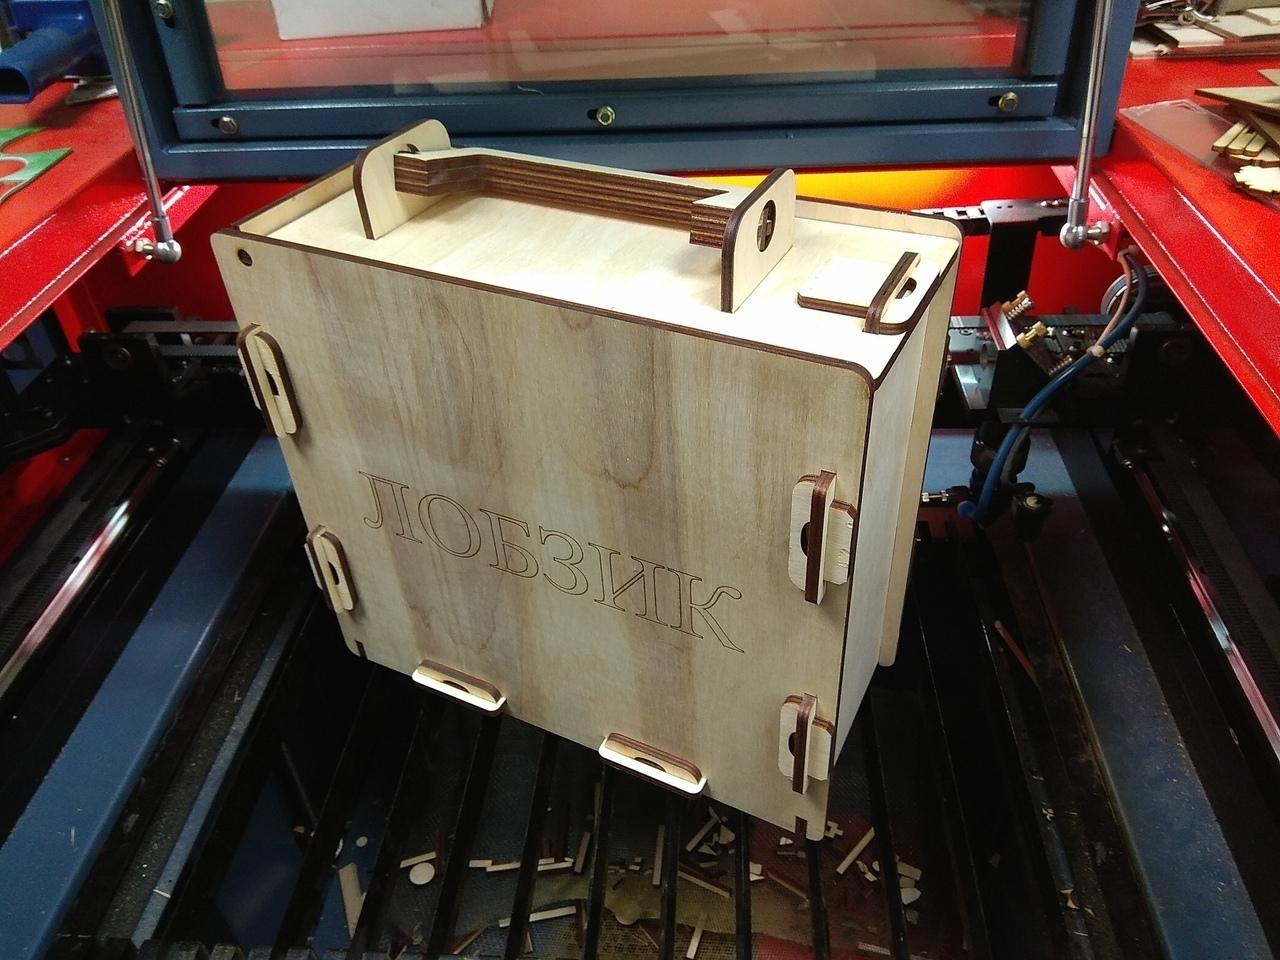 Laser Cut Tool Box With Handle 6mm Free Vector cdr Download - 3axis co